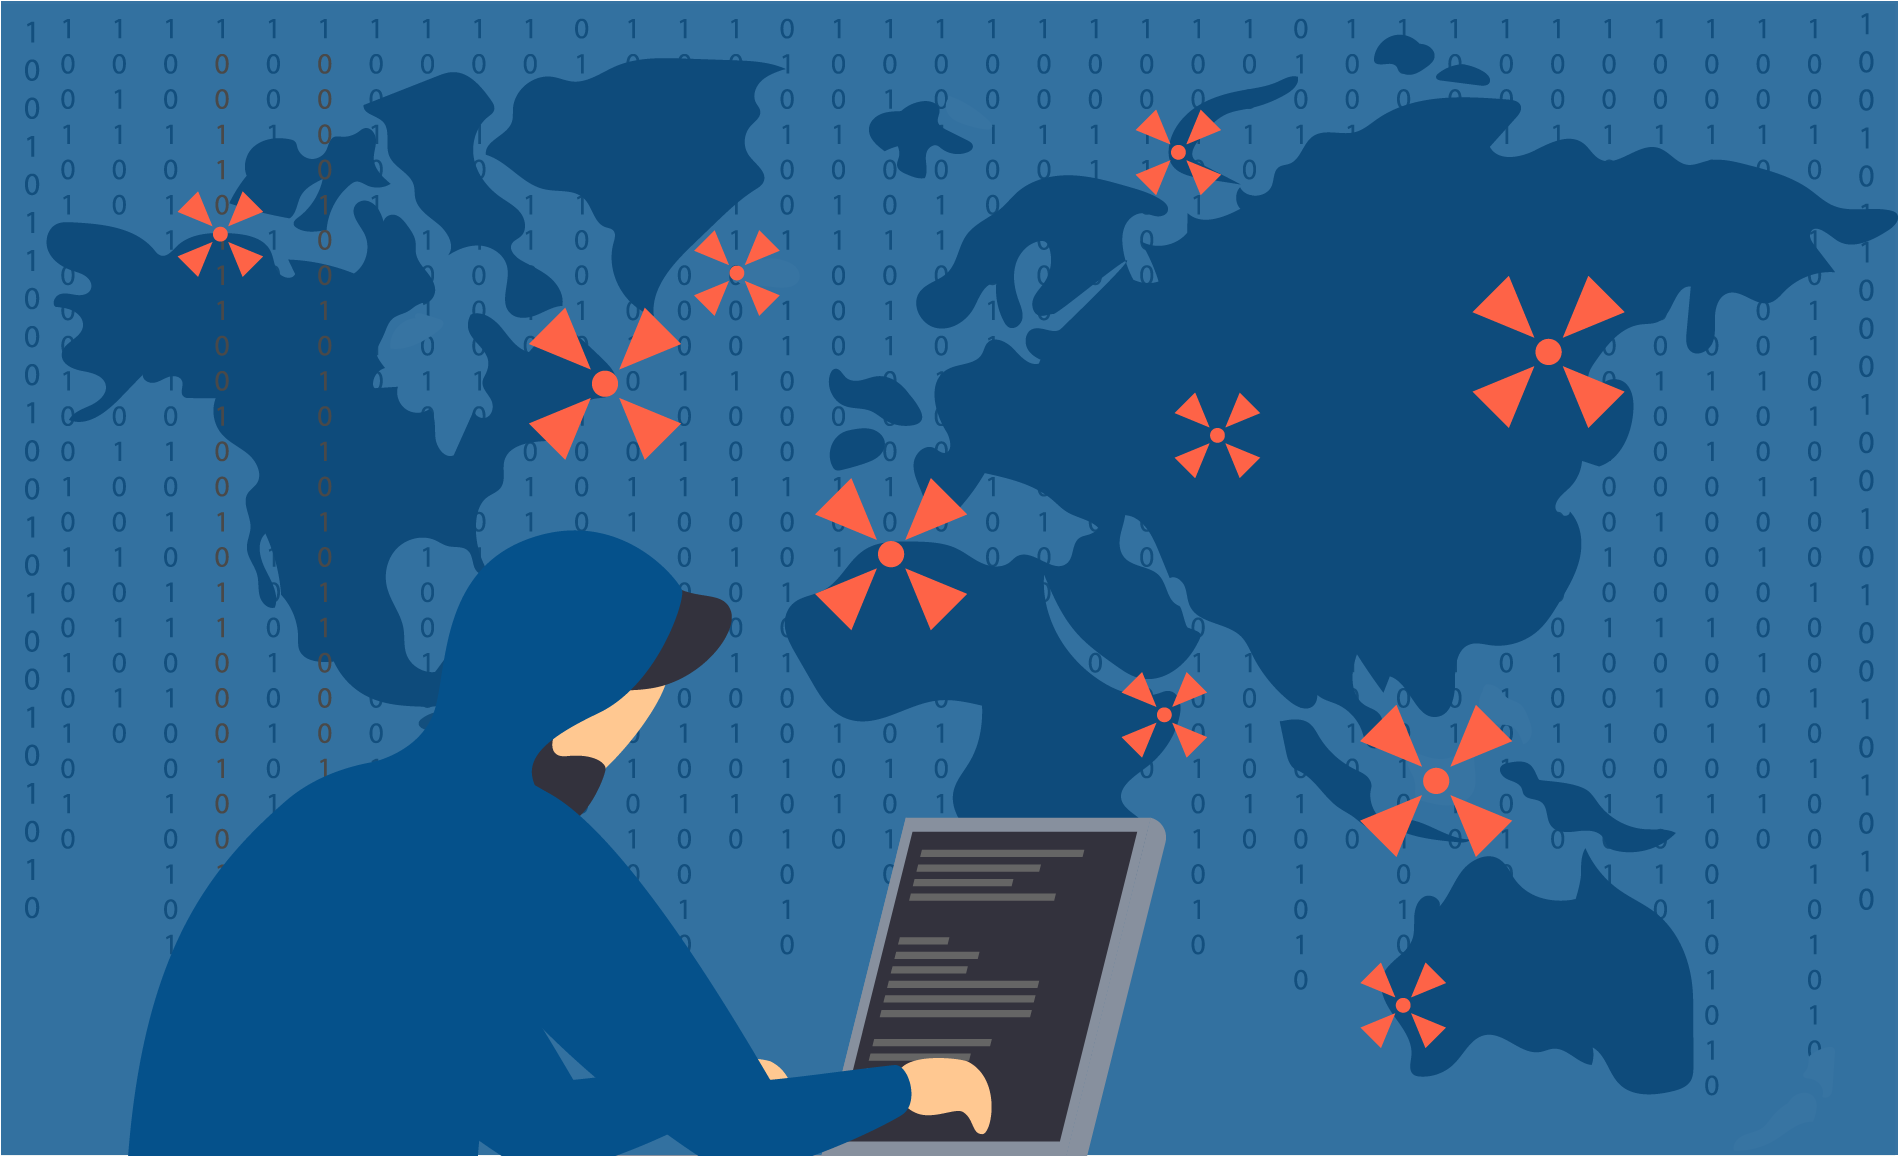 A Comprehensive IT Security Policy to Protect You from Cyberattacks